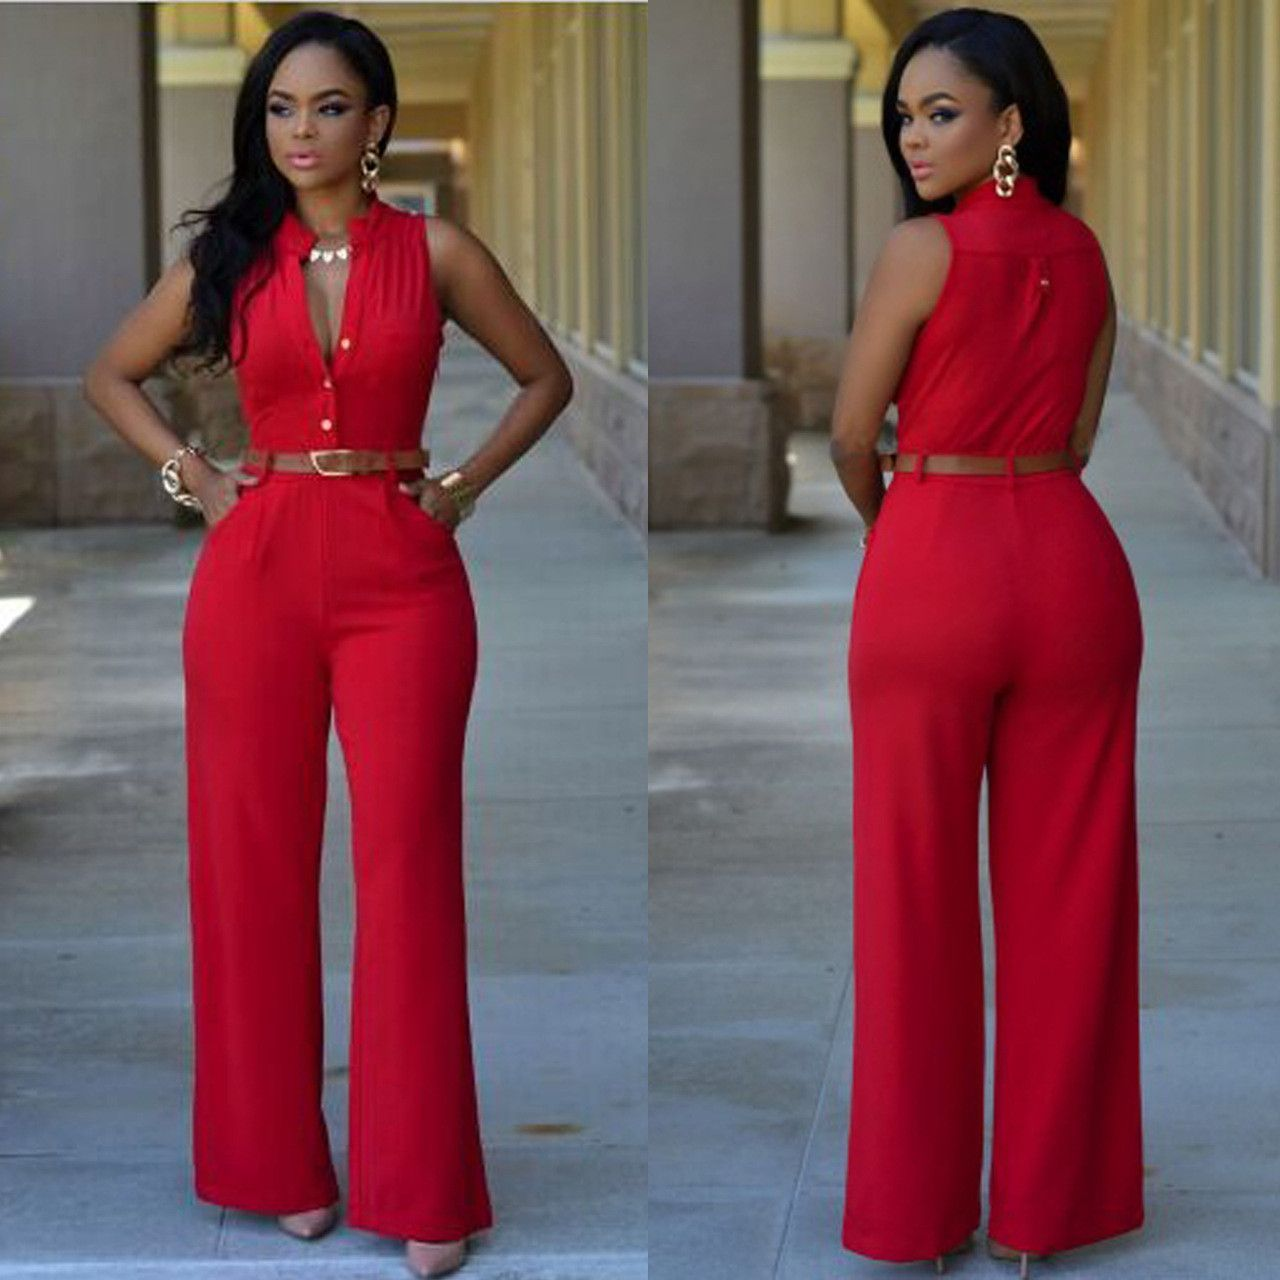 311a06ce013 Sleeveless Elegant Jumpsuit Overall 2016 Plus Size Solid Jumpsuits and  Rompers for Women(No Belt)